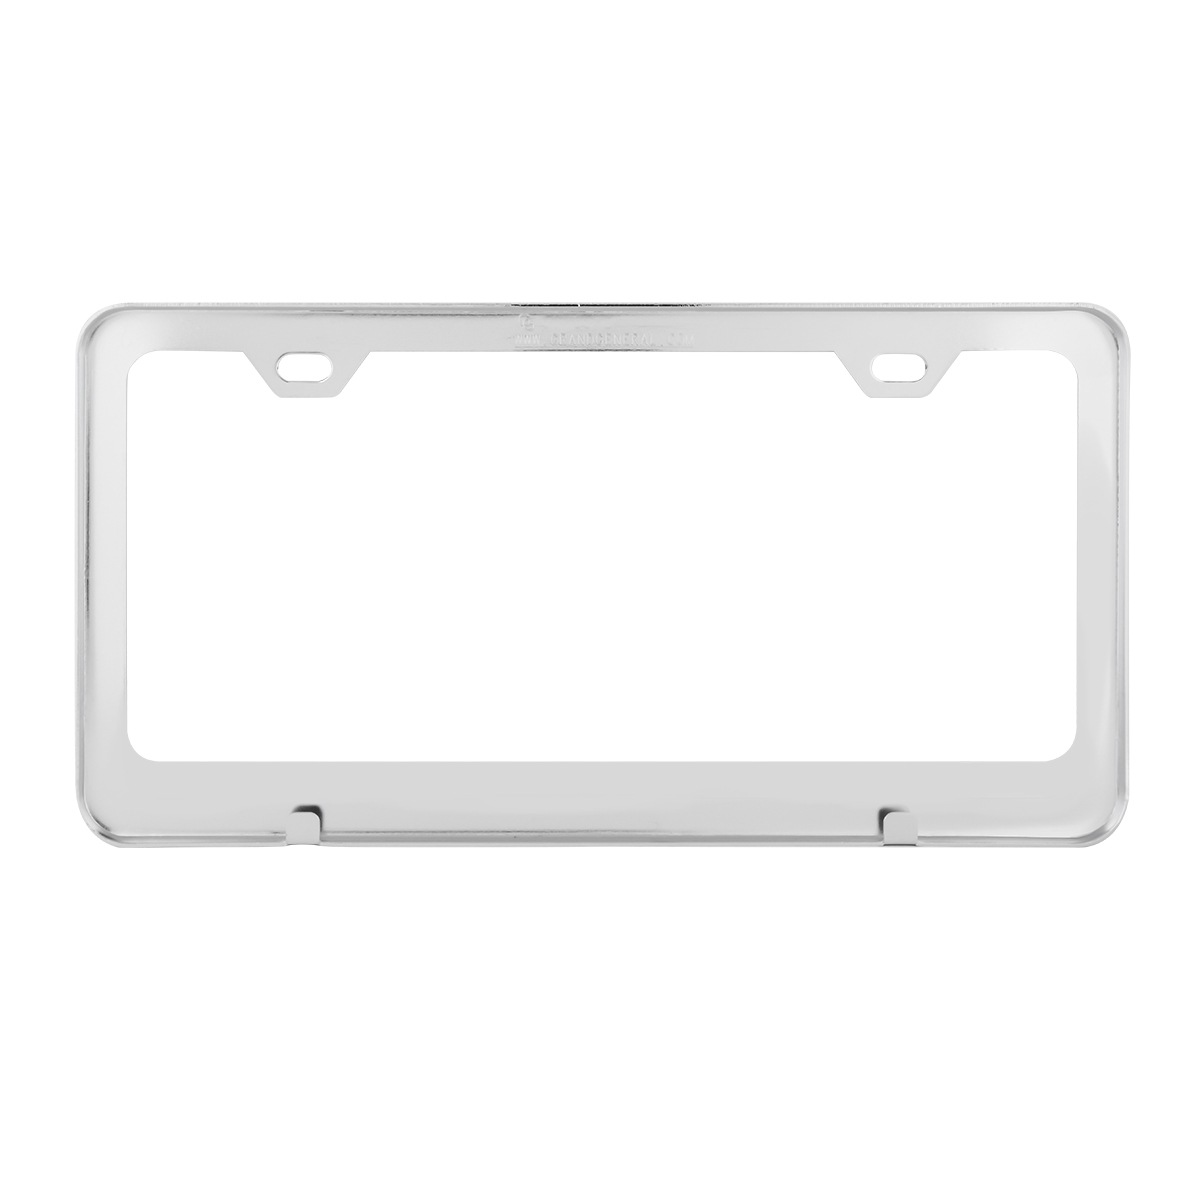 Plain Stainless Steel 2 Hole License Plate Frame - Back View